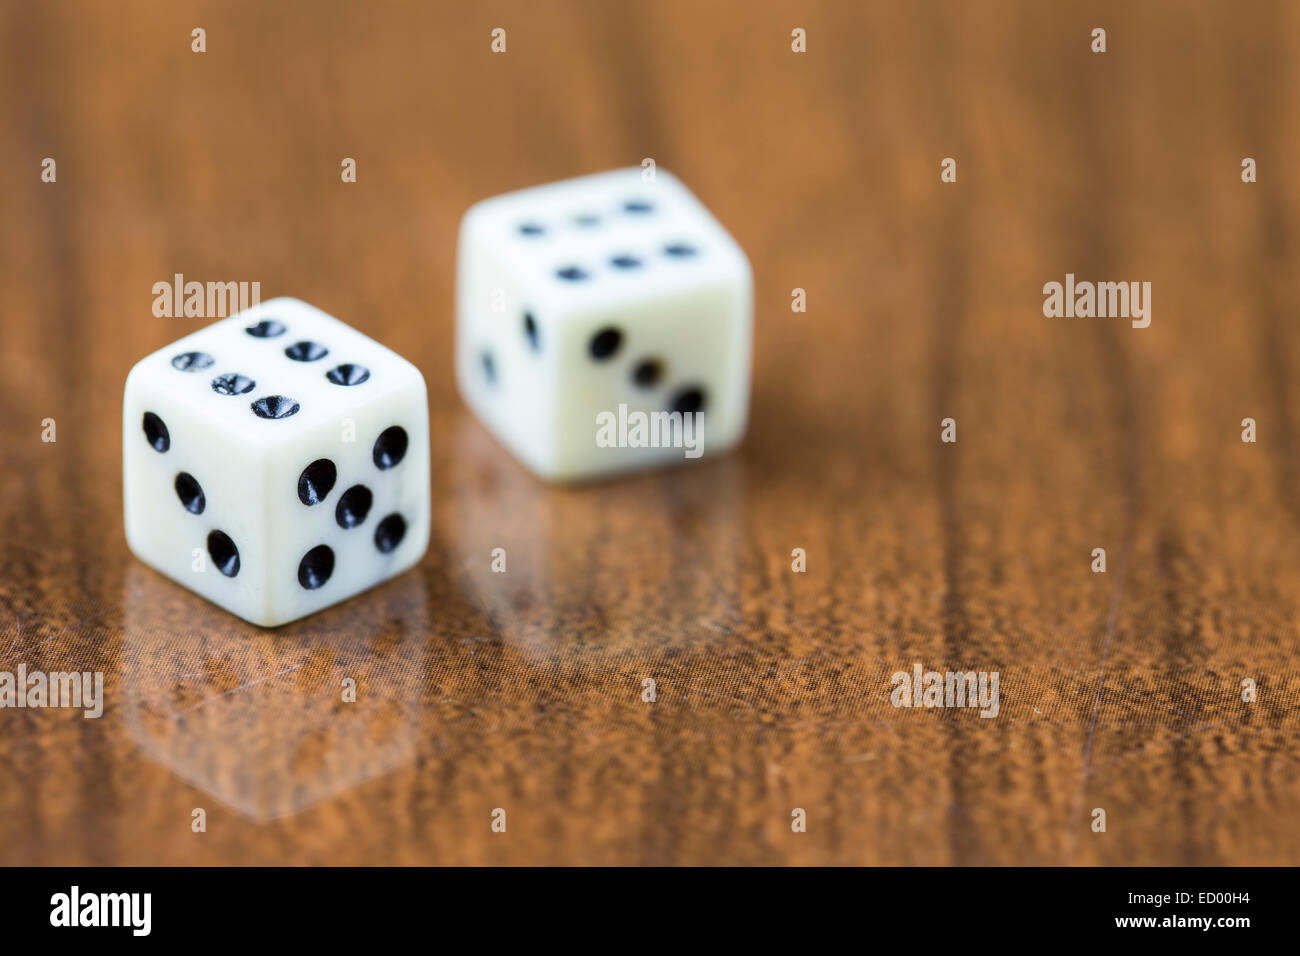 Two dice on a wooden background showing two sixes - Stock Image